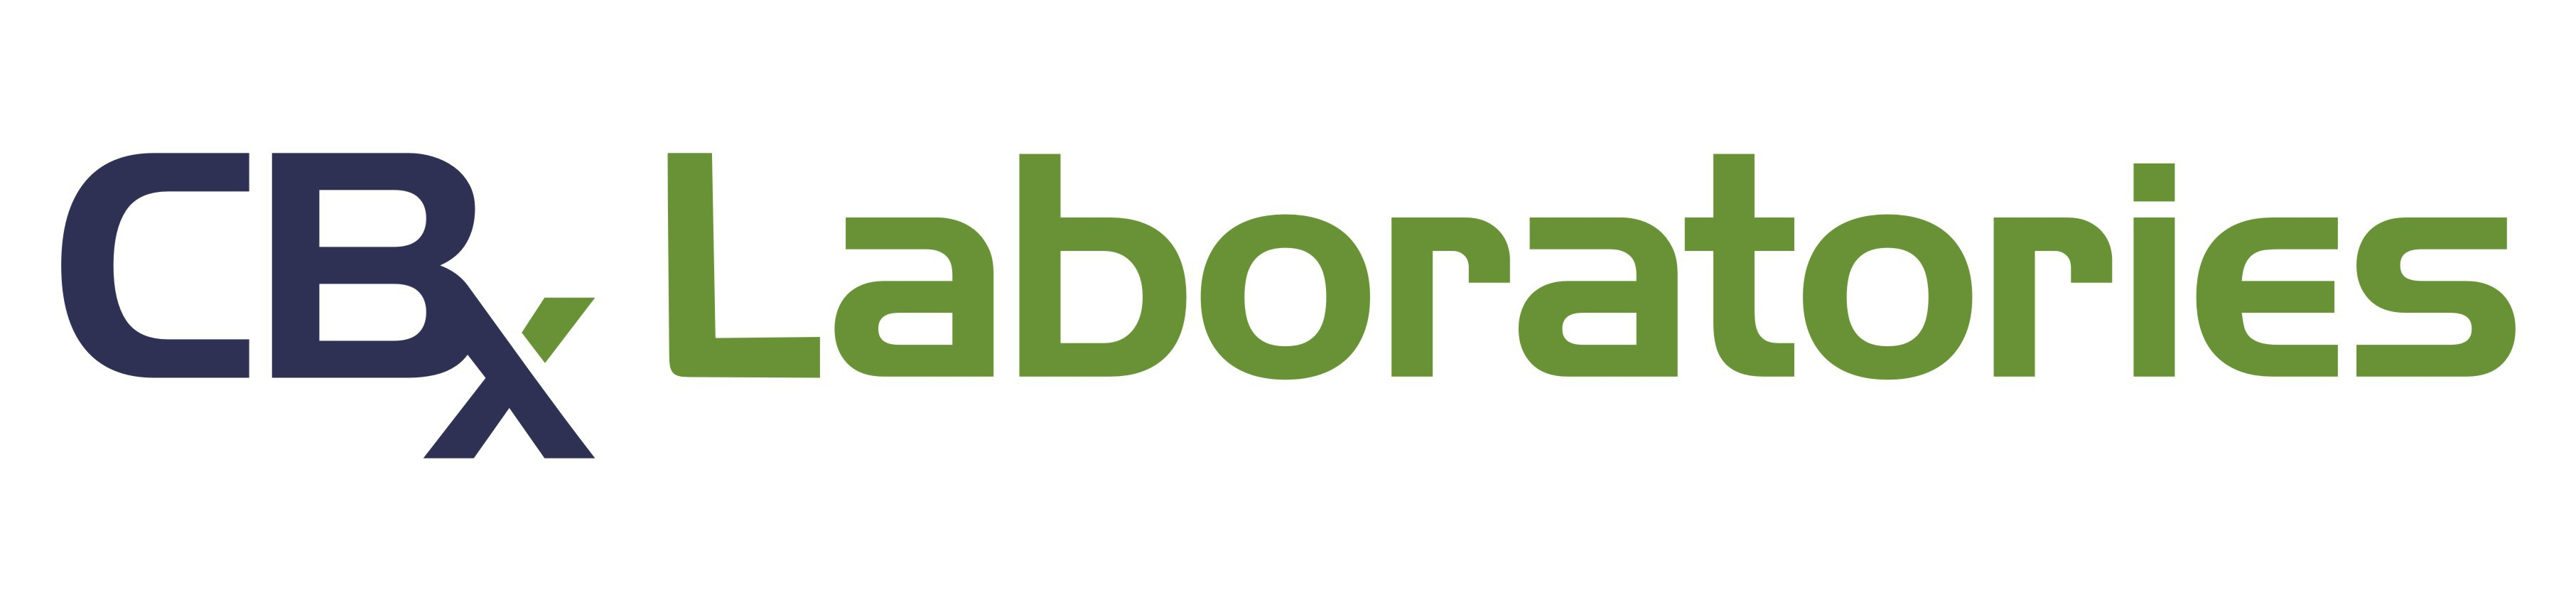 Cannabis Testing - Create a distinctive, clean and professional logo for CBx Labaratories